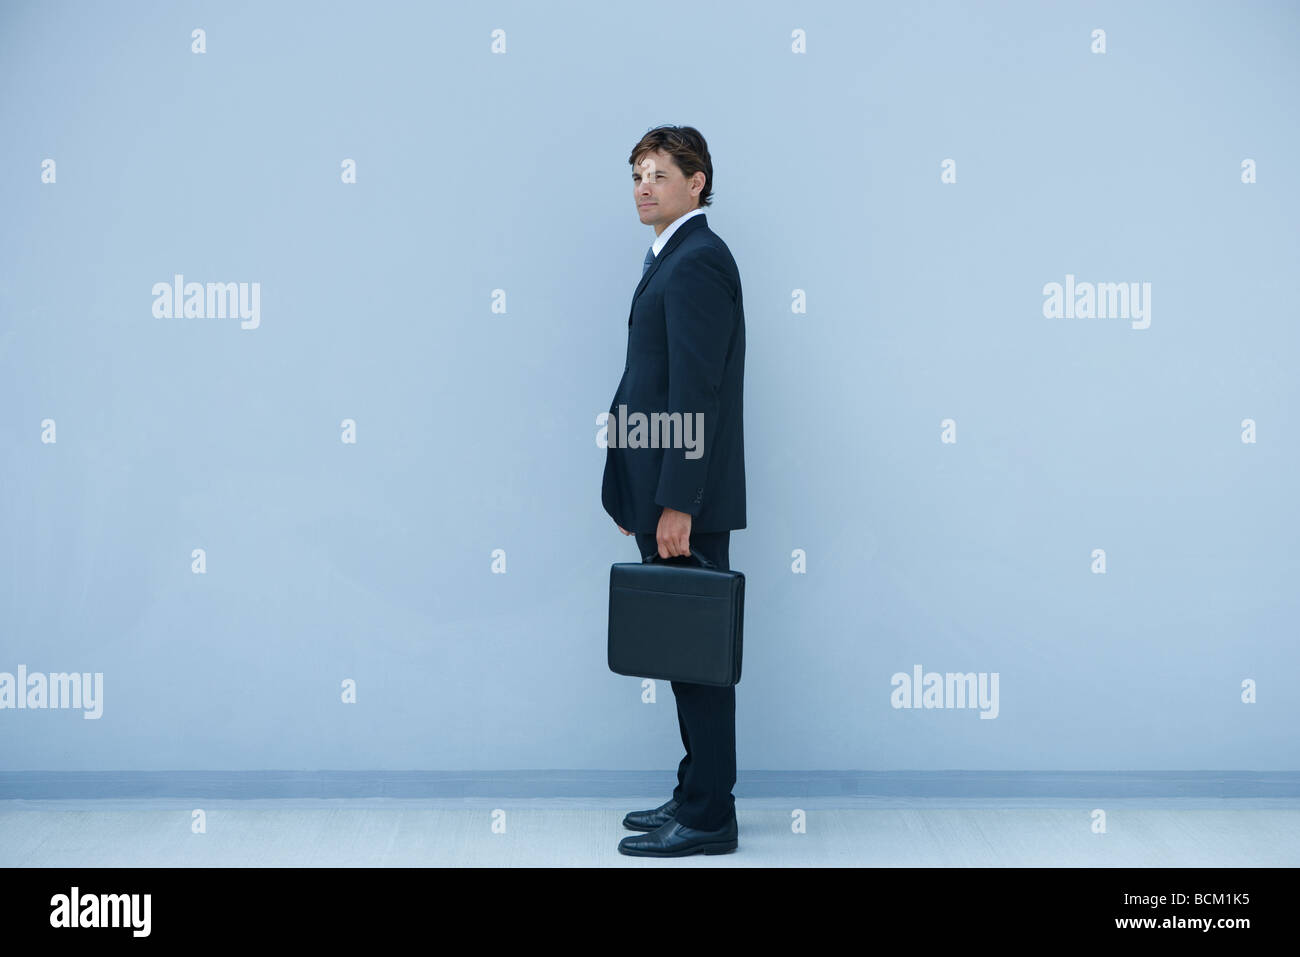 Businessman standing, holding briefcase, full length - Stock Image